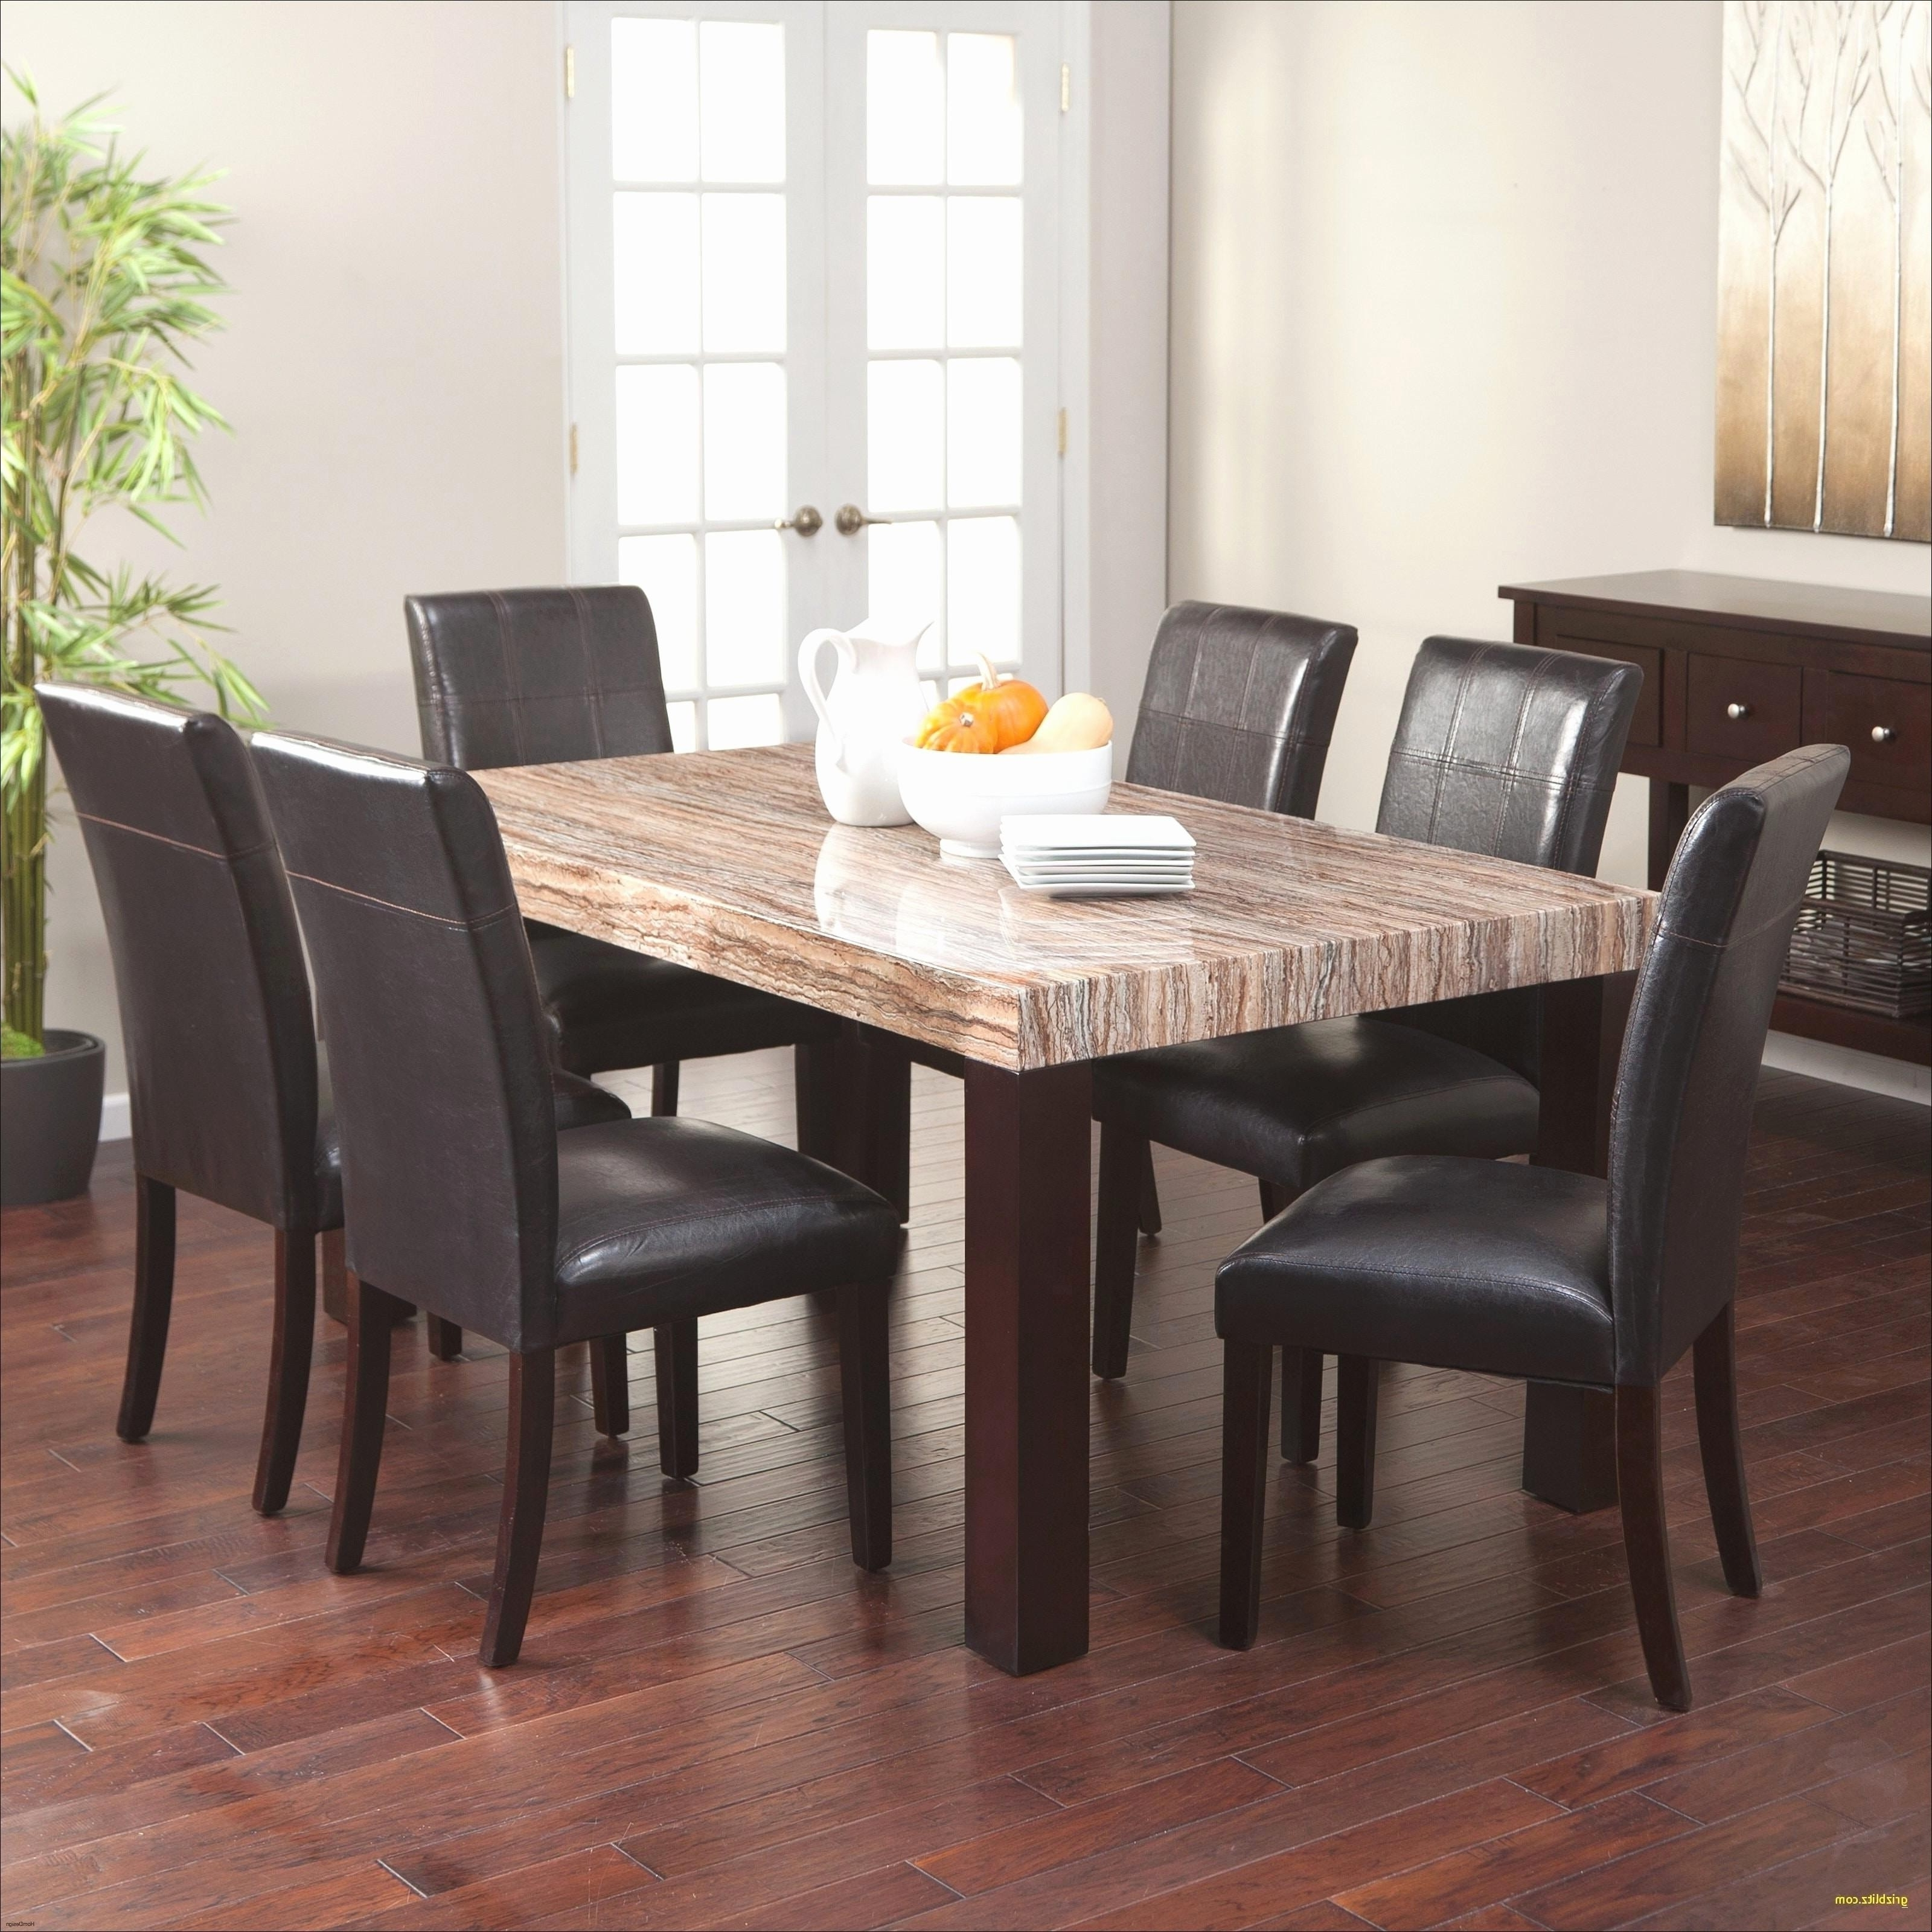 Round Glass Dining Table Sets For 4 Lovely Cheap Dining Room Tables Intended For Famous Cheap Dining Sets (View 21 of 25)